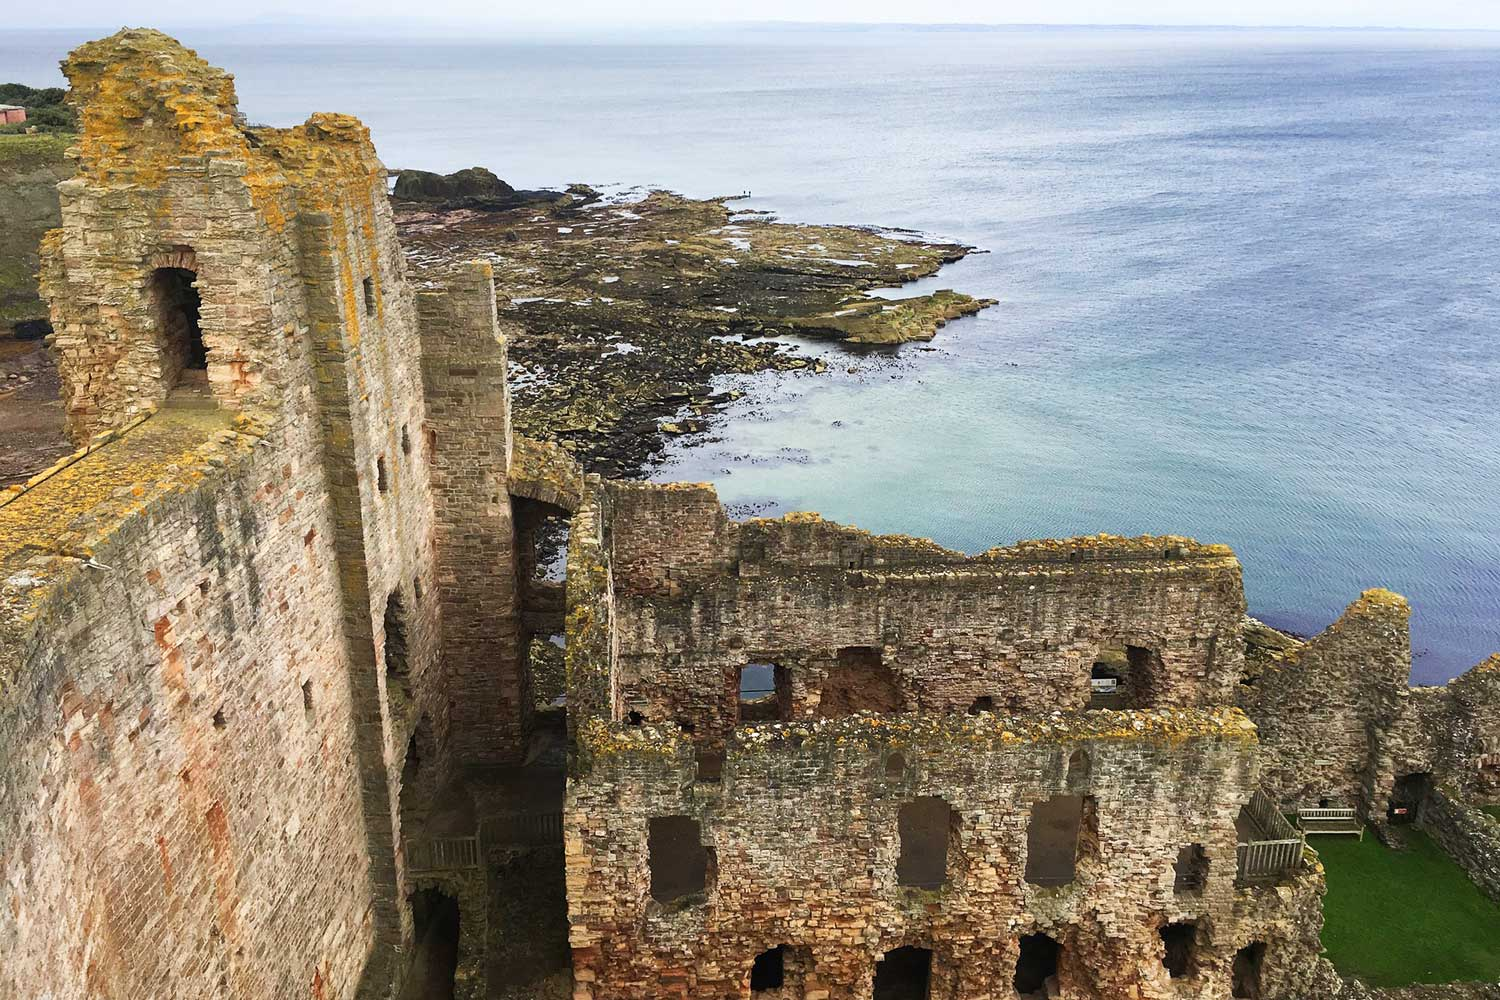 Ocean view from Tantallon Castle, Scotland